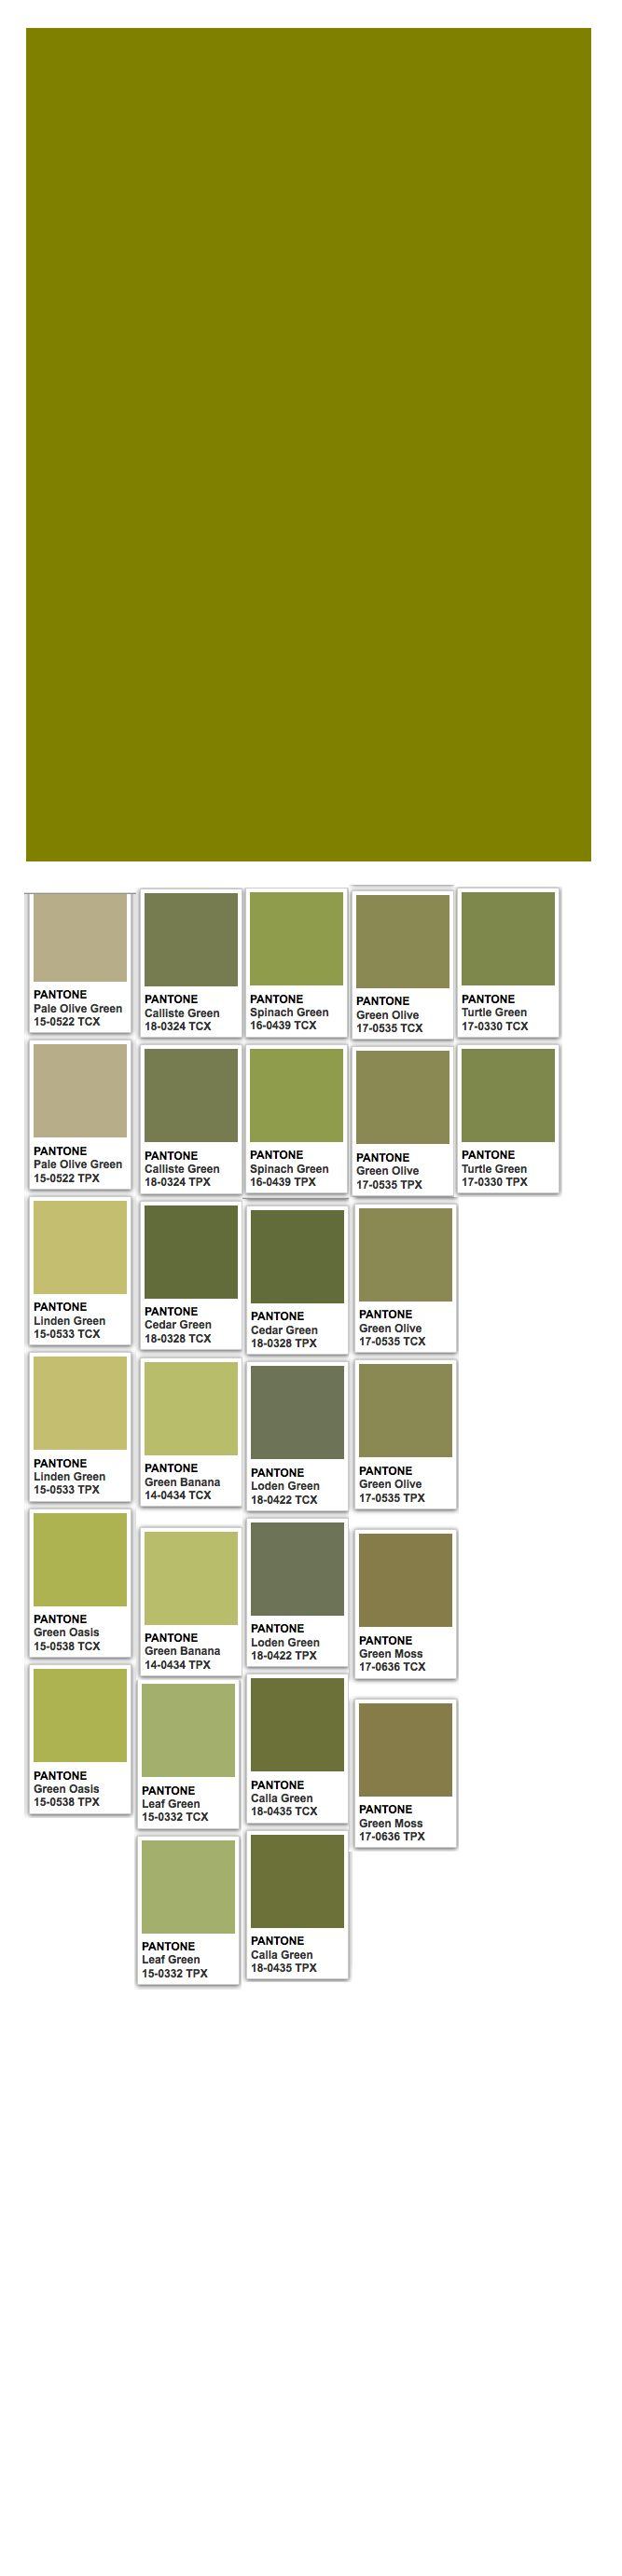 Olive (web) and Pantone colors